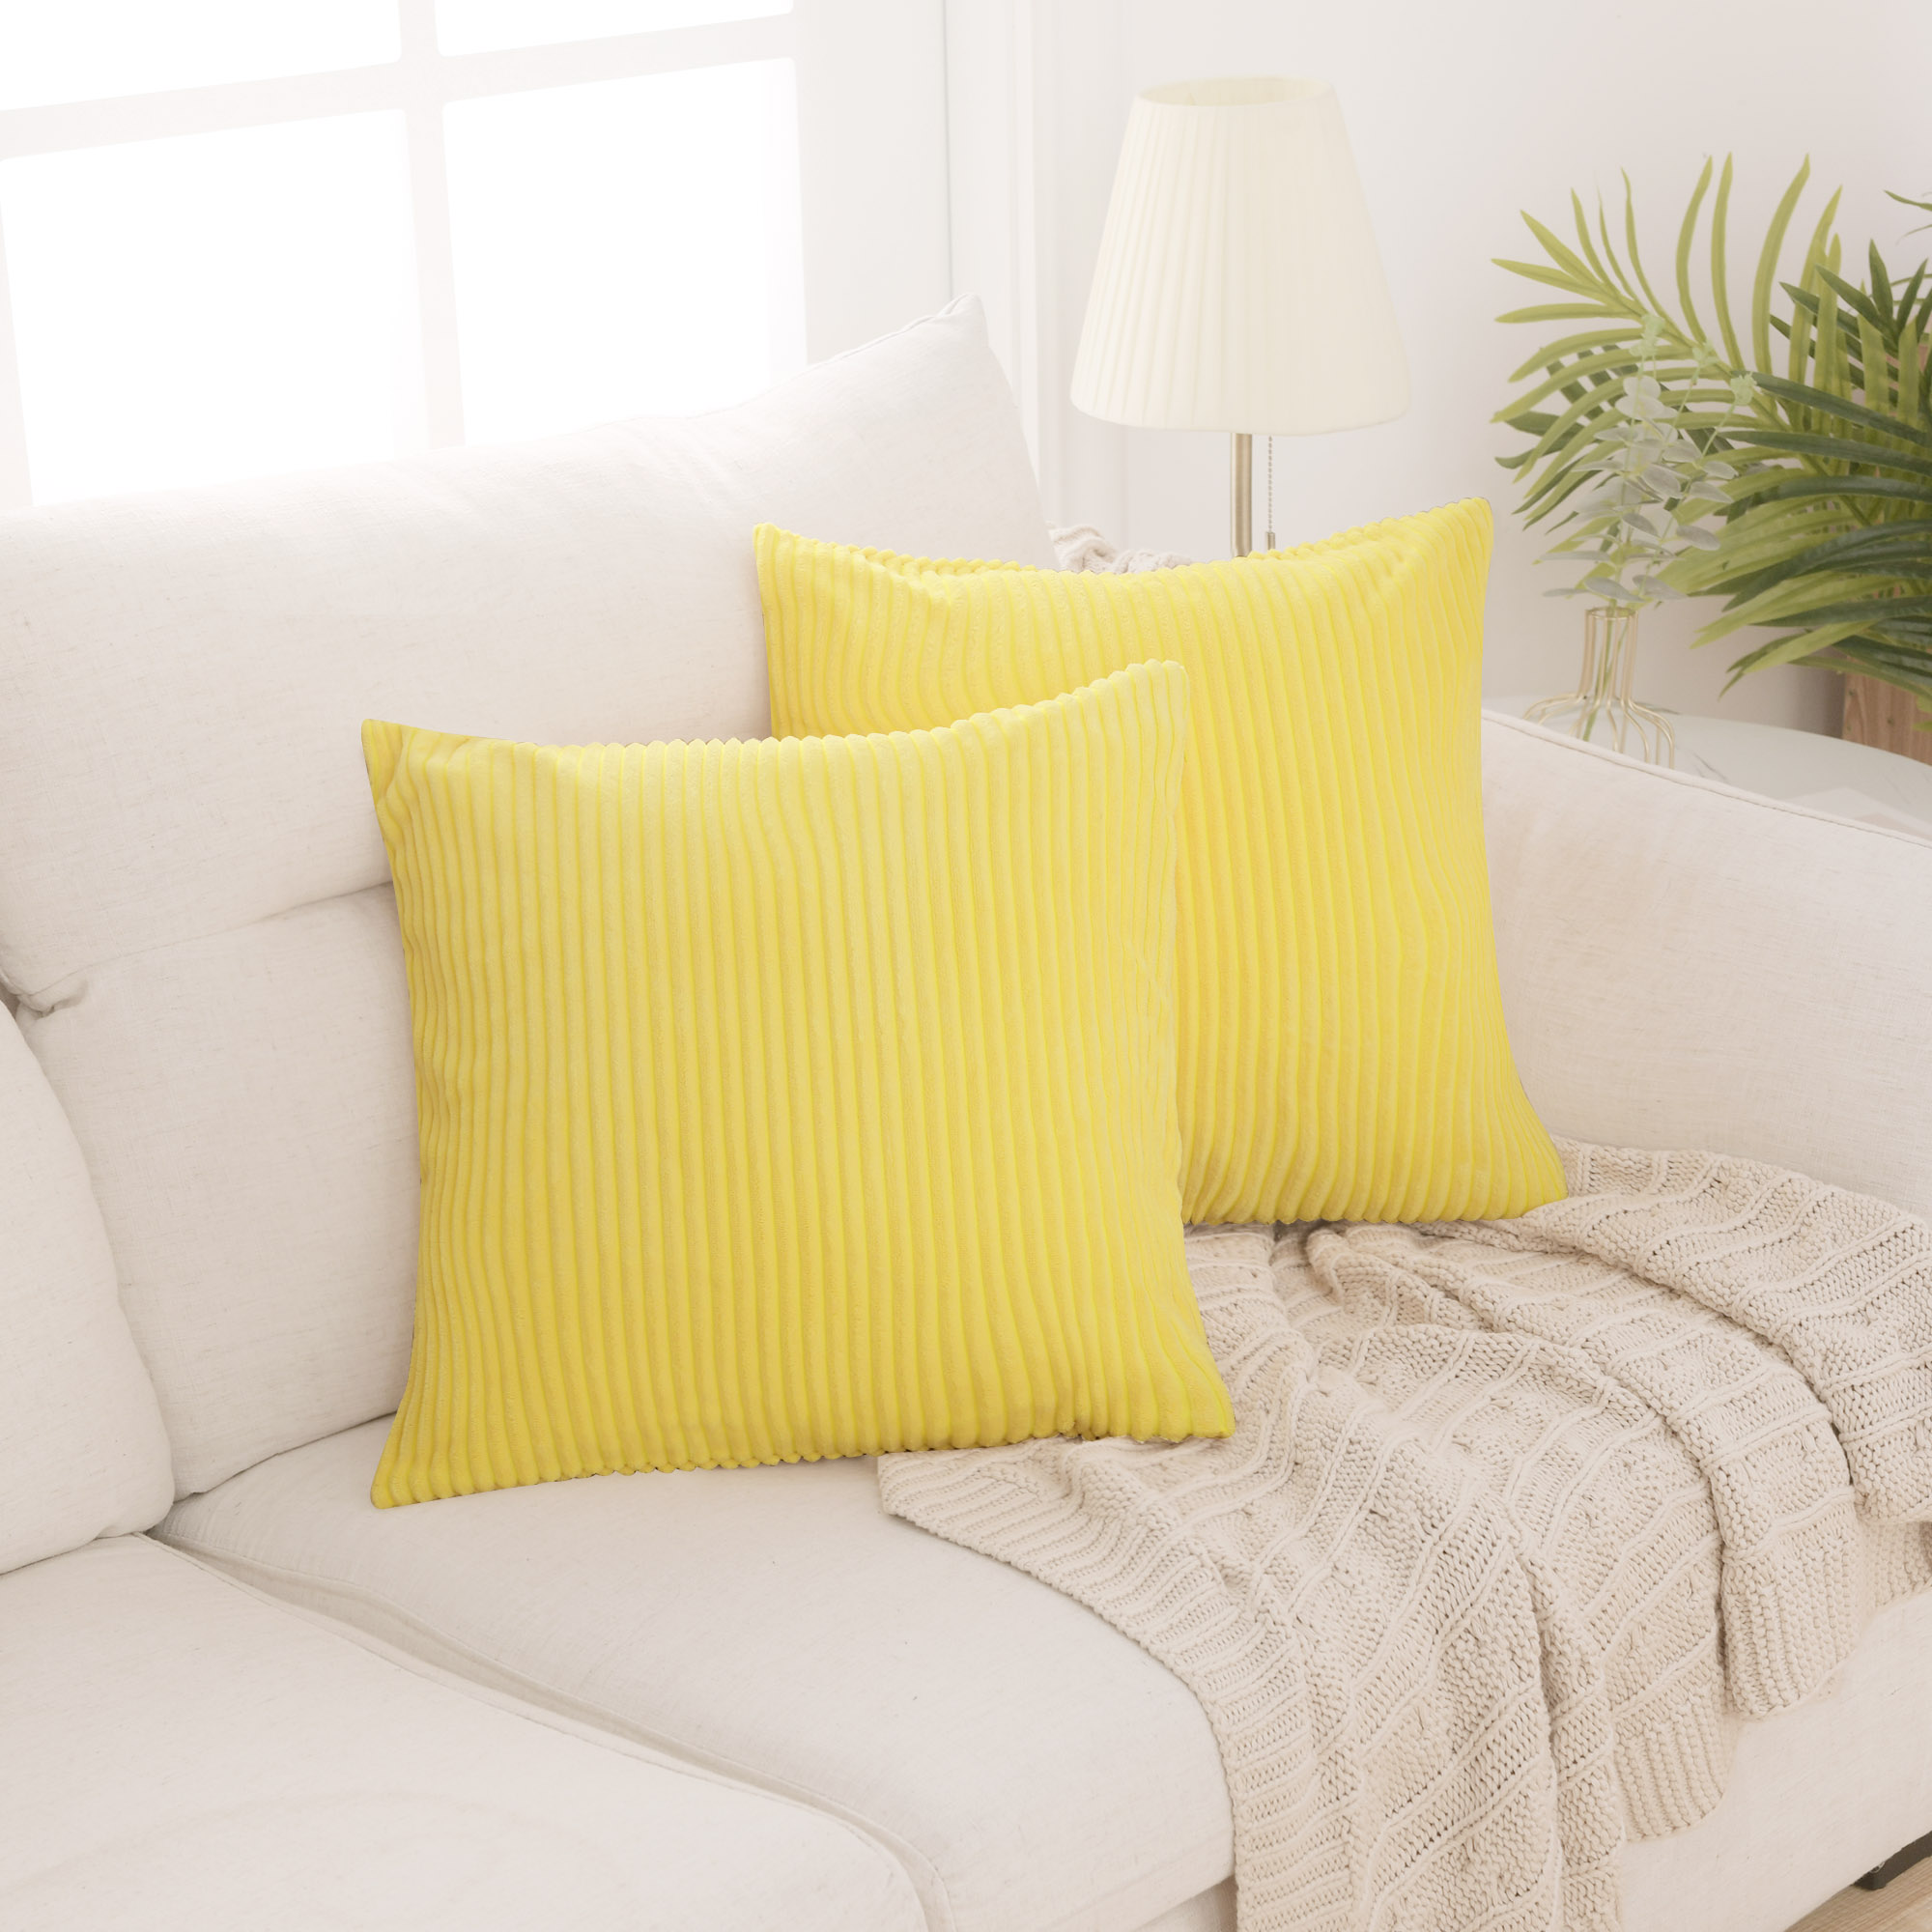 deconovo yellow throw pillow cover solid color corduroy cushion cover stripe pattern set of 2 decorative pillow cases for bedroom living room 24x24 in